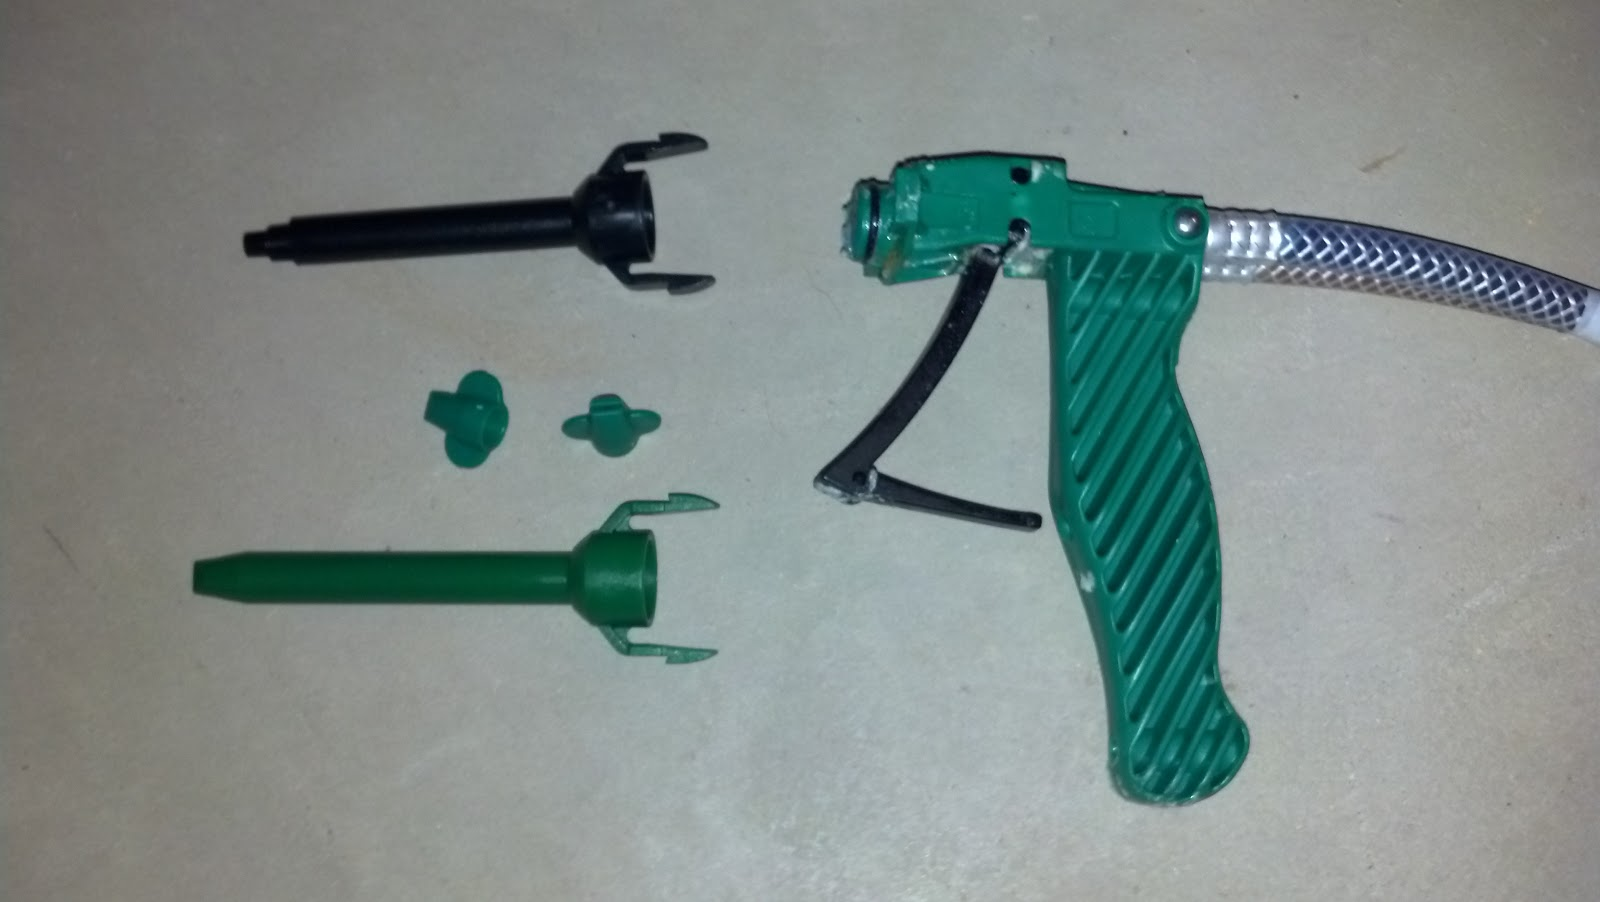 Diy spray foam insulation foam it green review spray gun and removable spray tips solutioingenieria Image collections